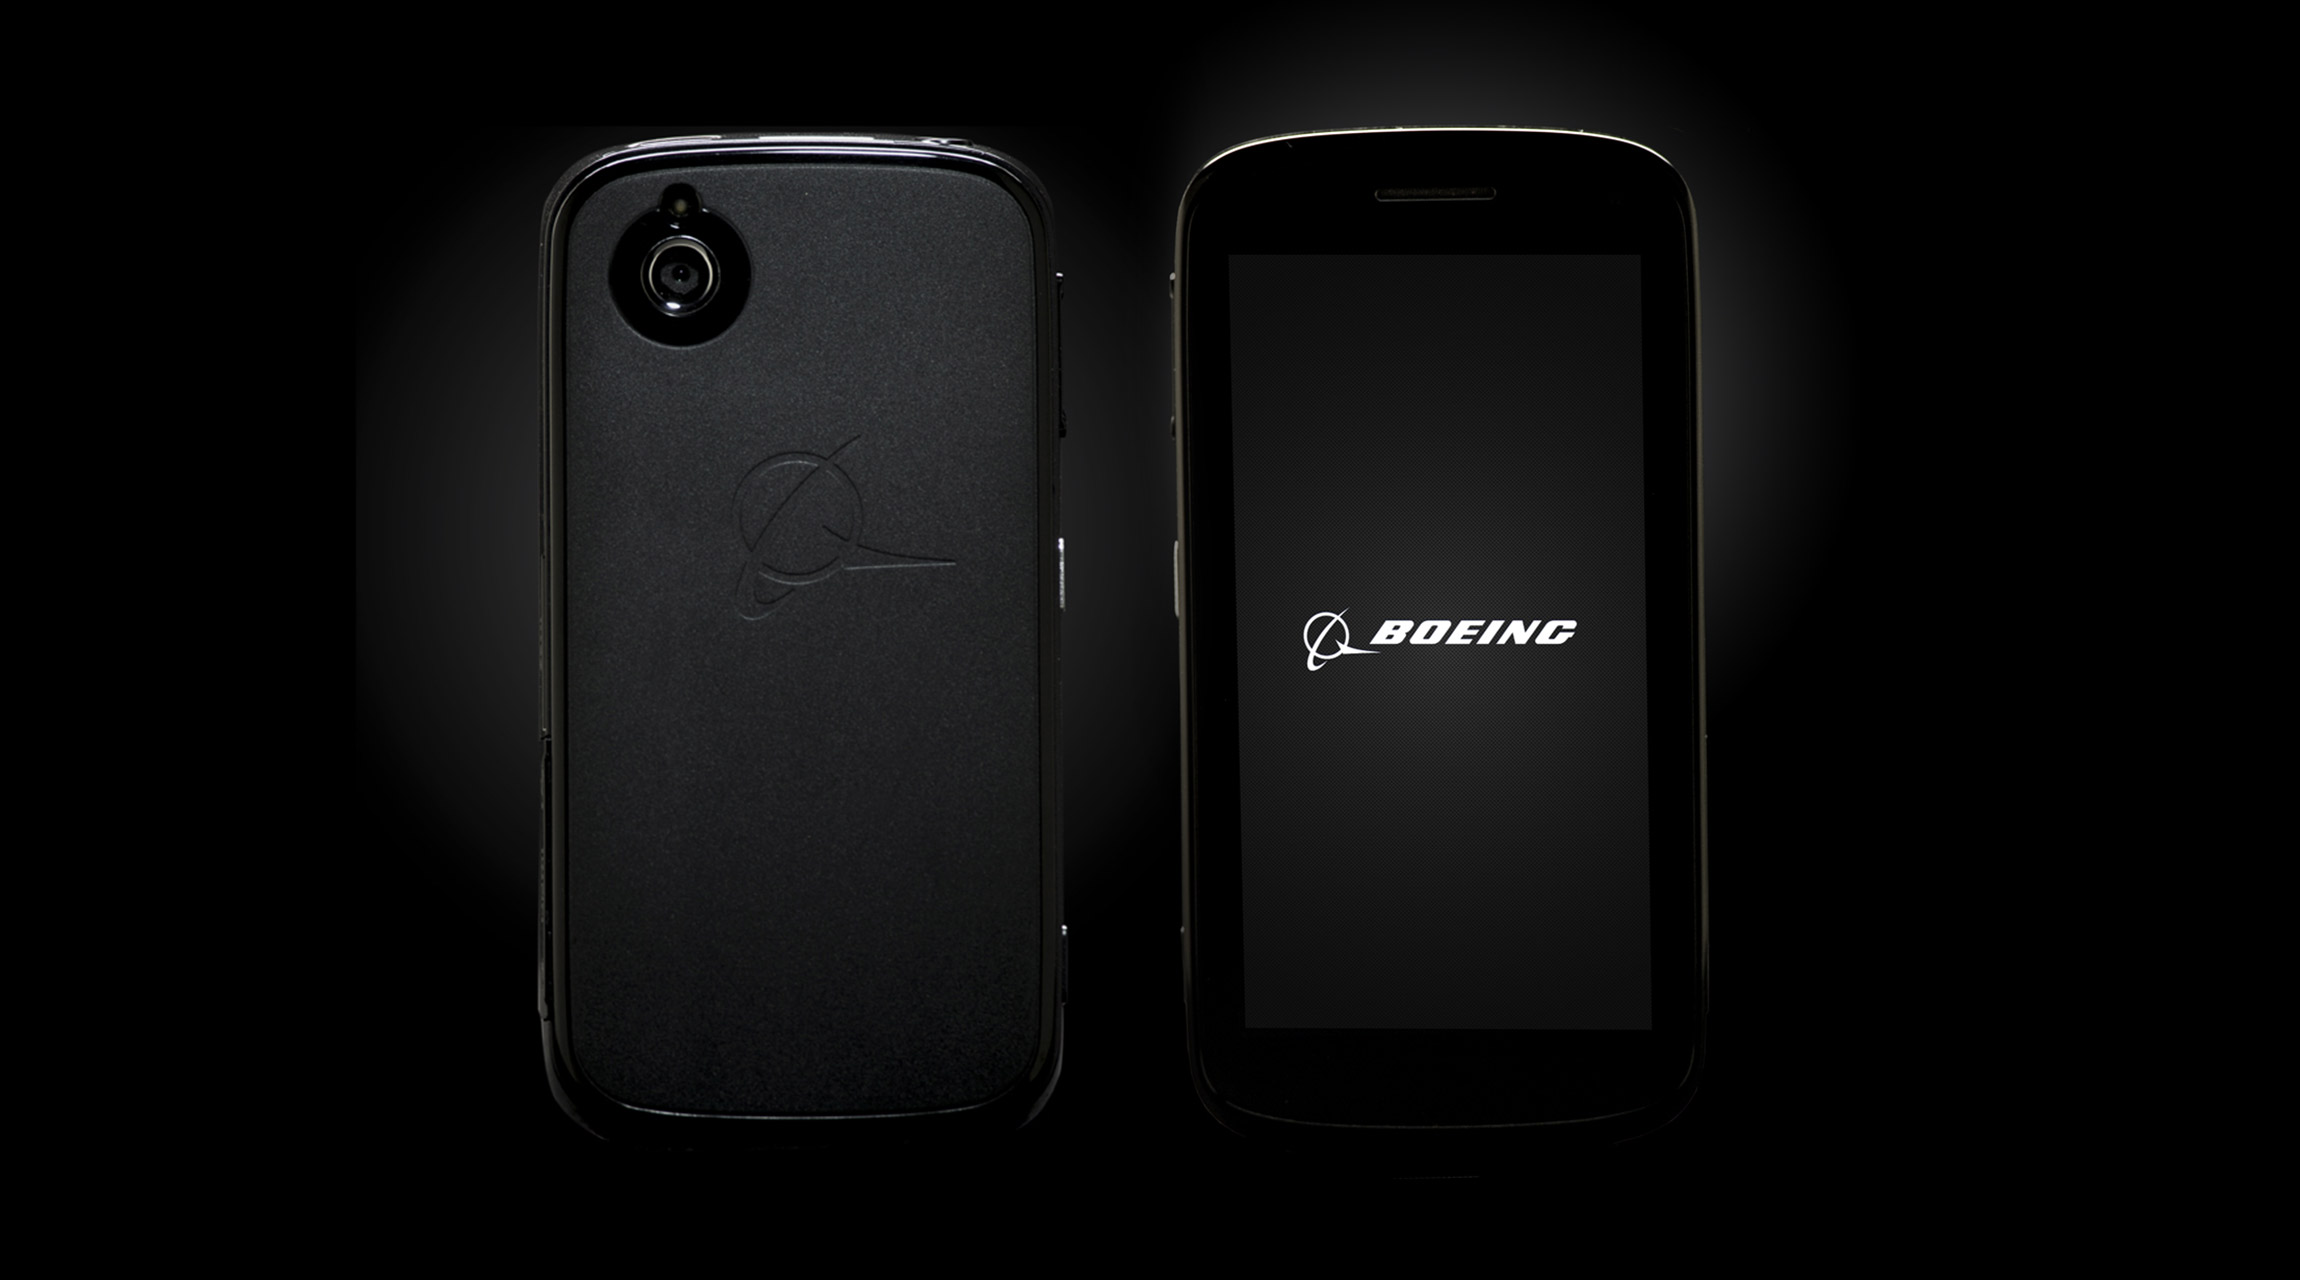 This new secure phone for government agencies and defense contractors will self-destruct if it's tampered with. Photo: Boeing